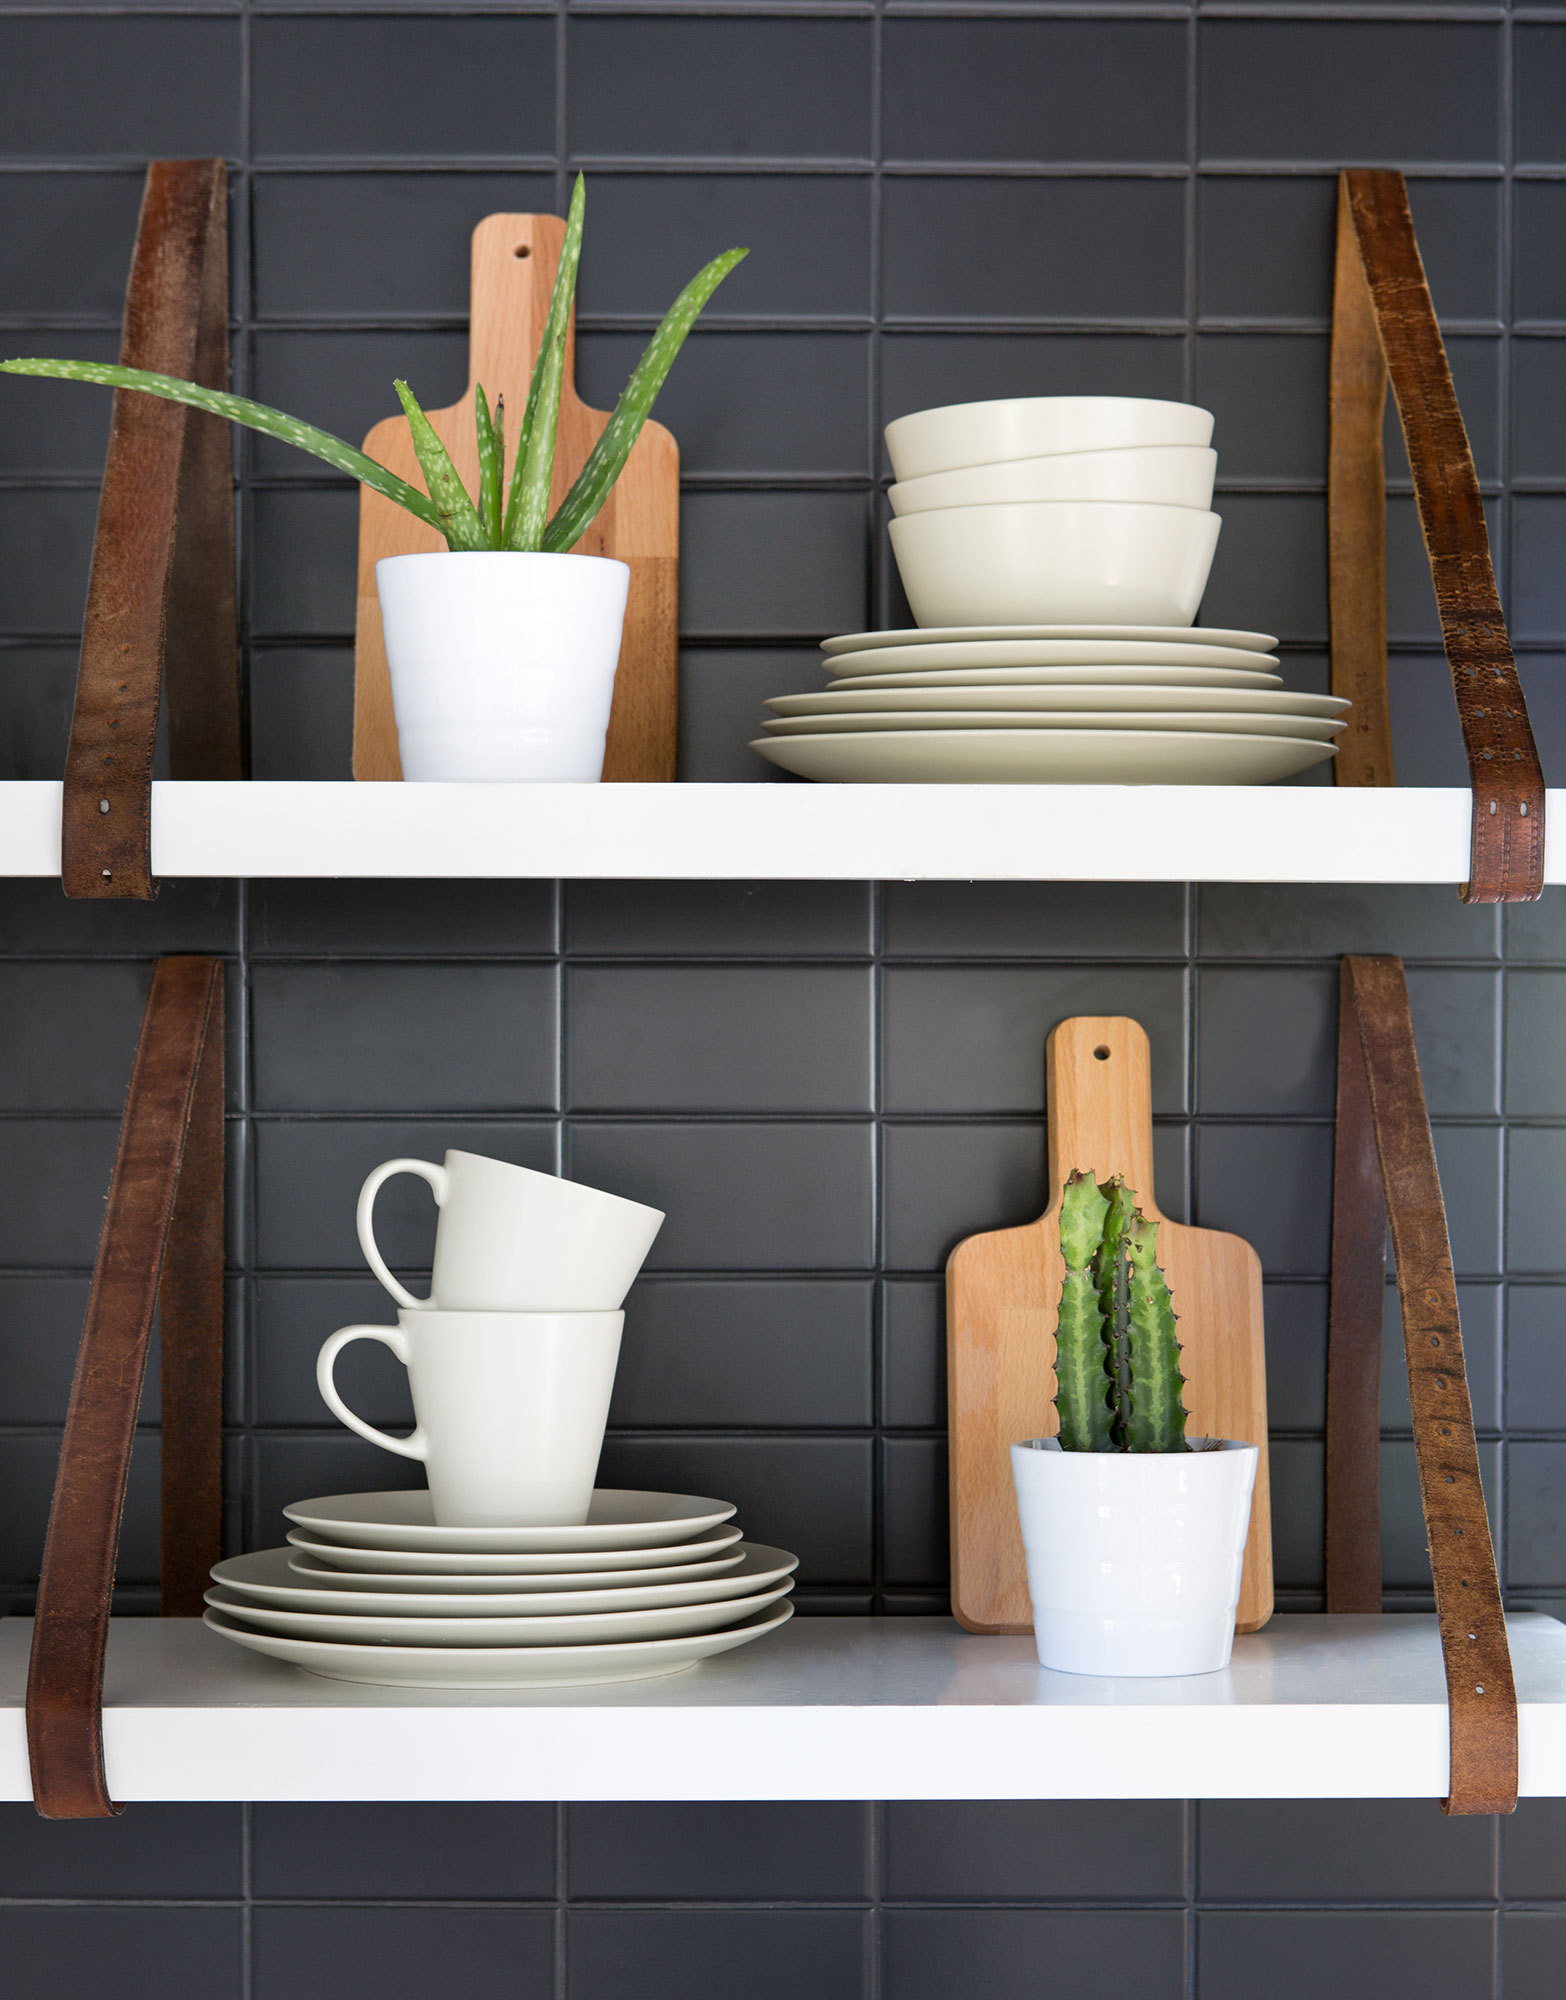 Kitchen accessories in woods and whites look cohesive, not busy.